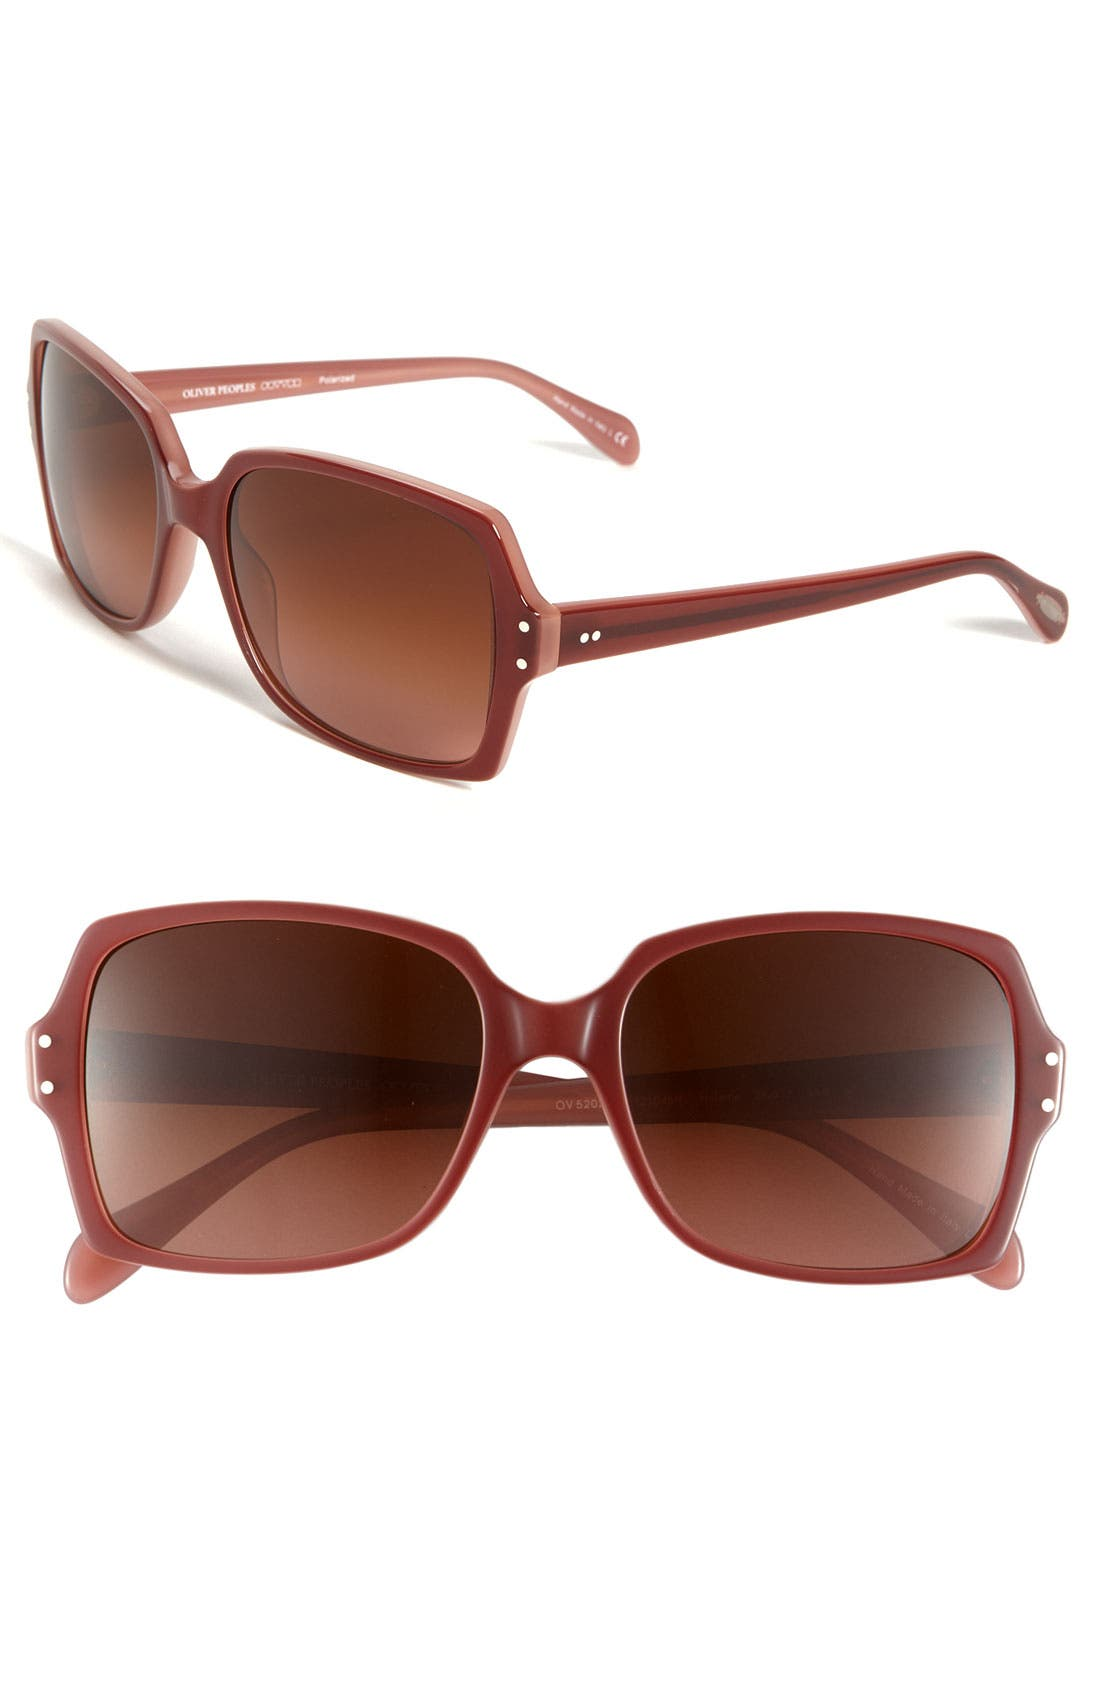 Main Image - Oliver Peoples 'Helaine' 56mm Sunglasses